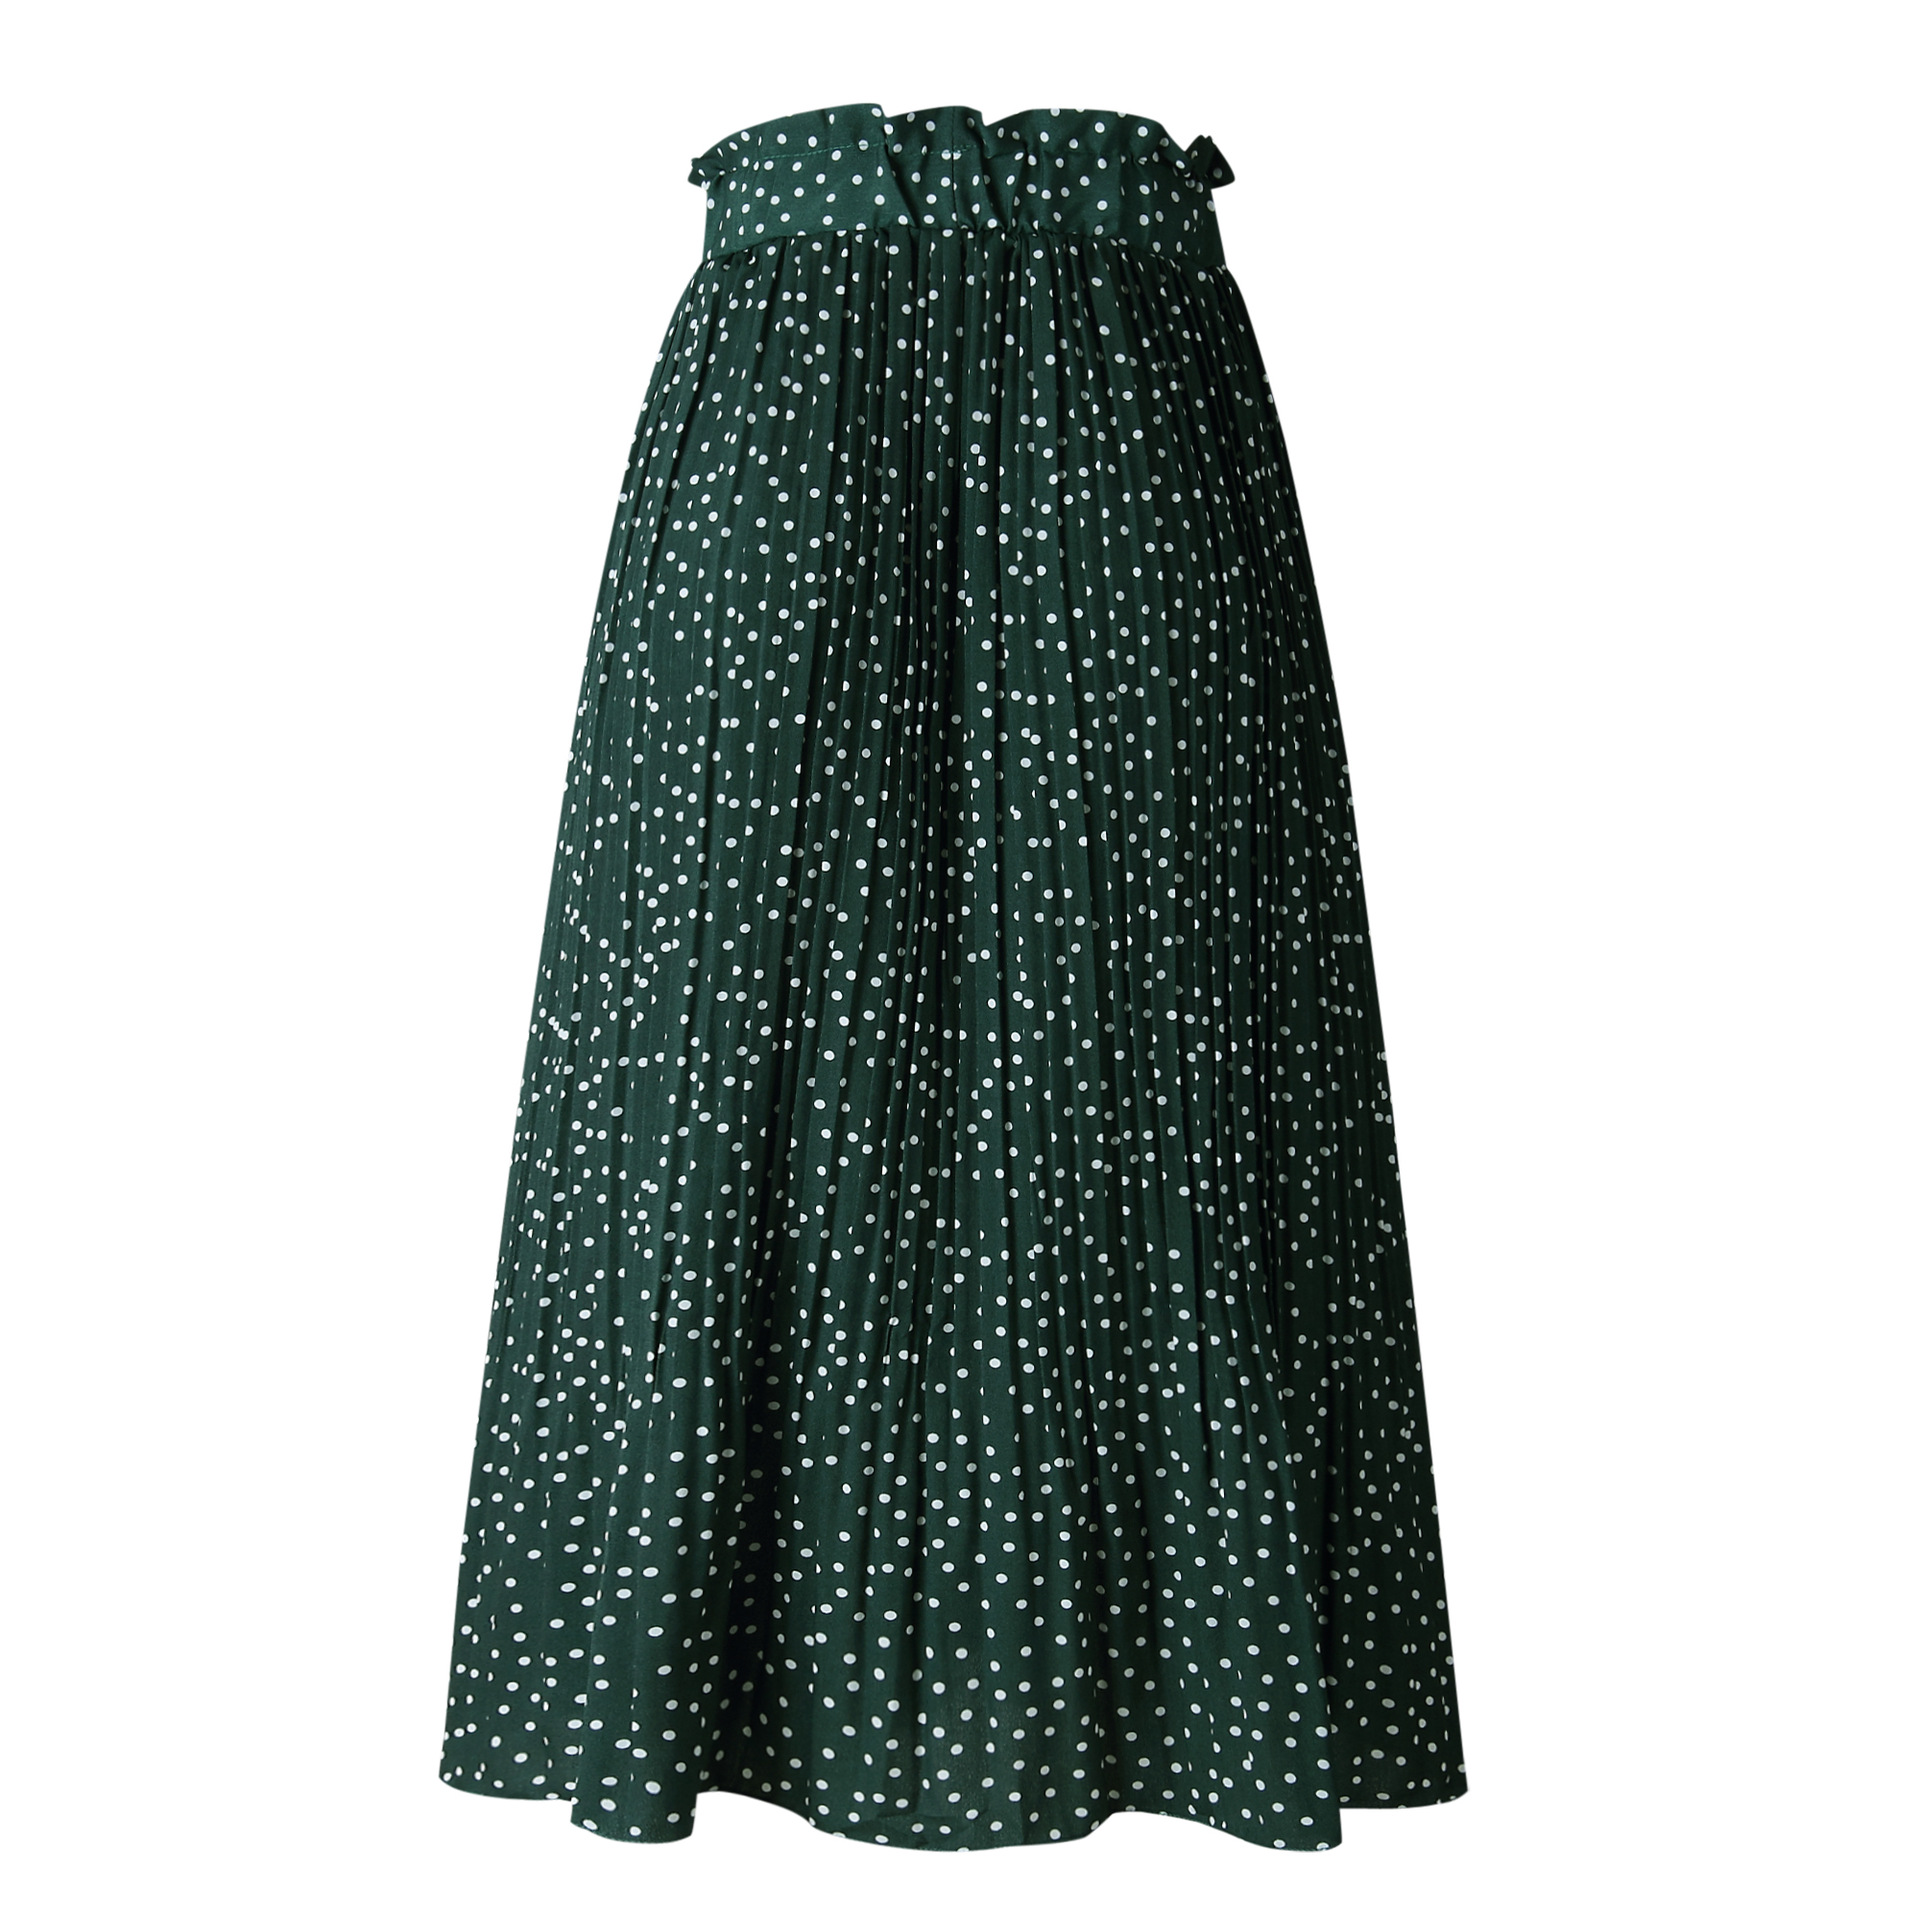 H317c4b5481a14142957037007e190f7fv - Summer Casual Chiffon Print Pockets High Waist Pleated Maxi Skirt Womens Long Skirts For Women